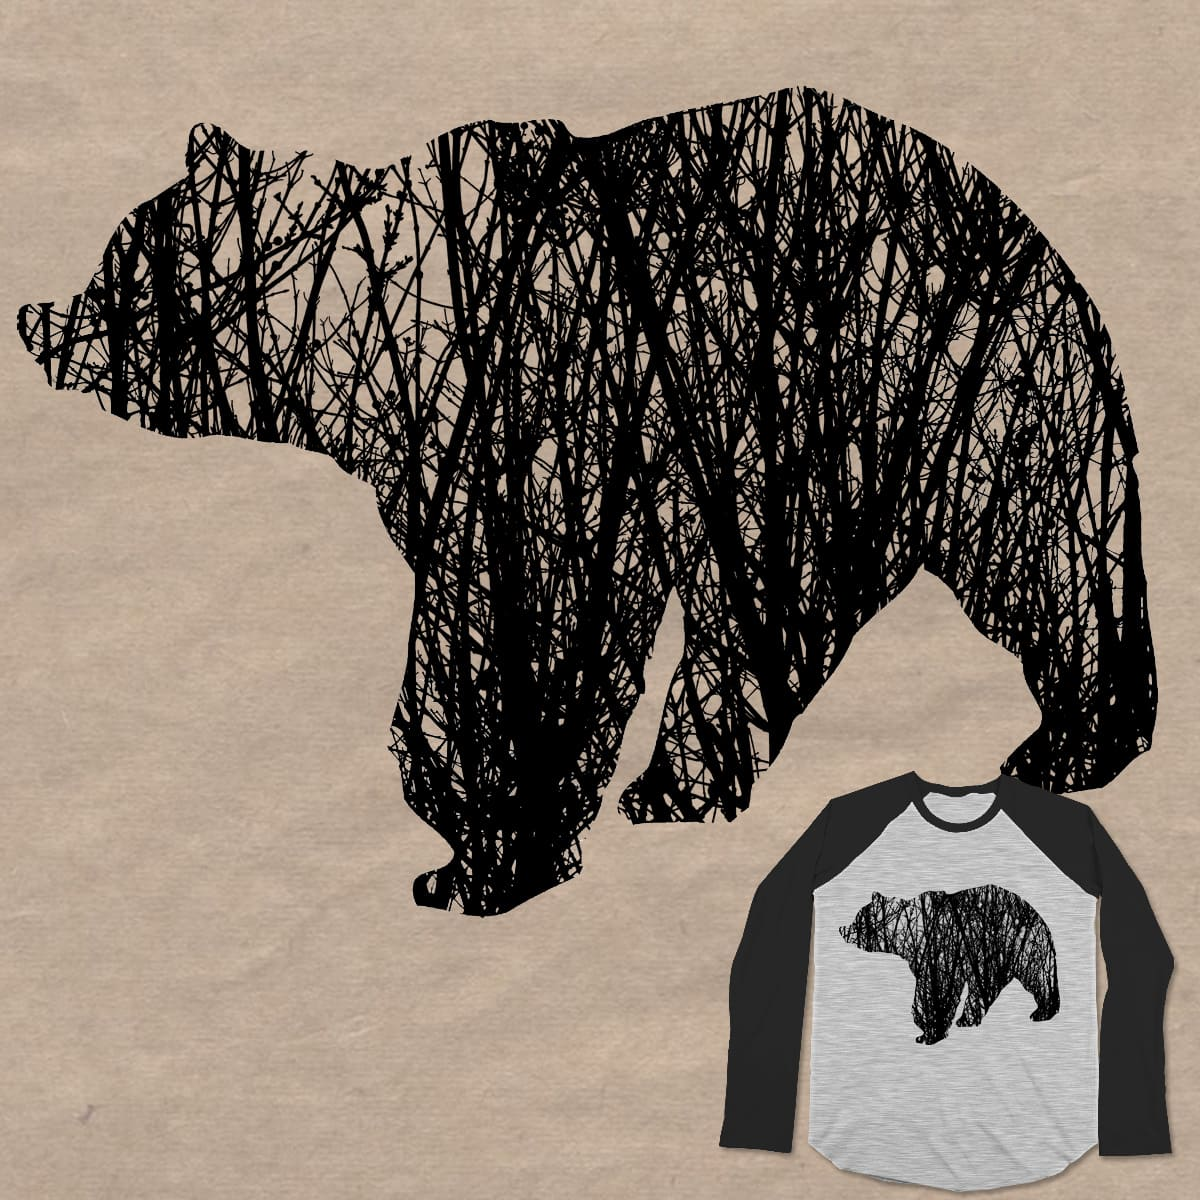 Fear the Bear by Loremnzo on Threadless